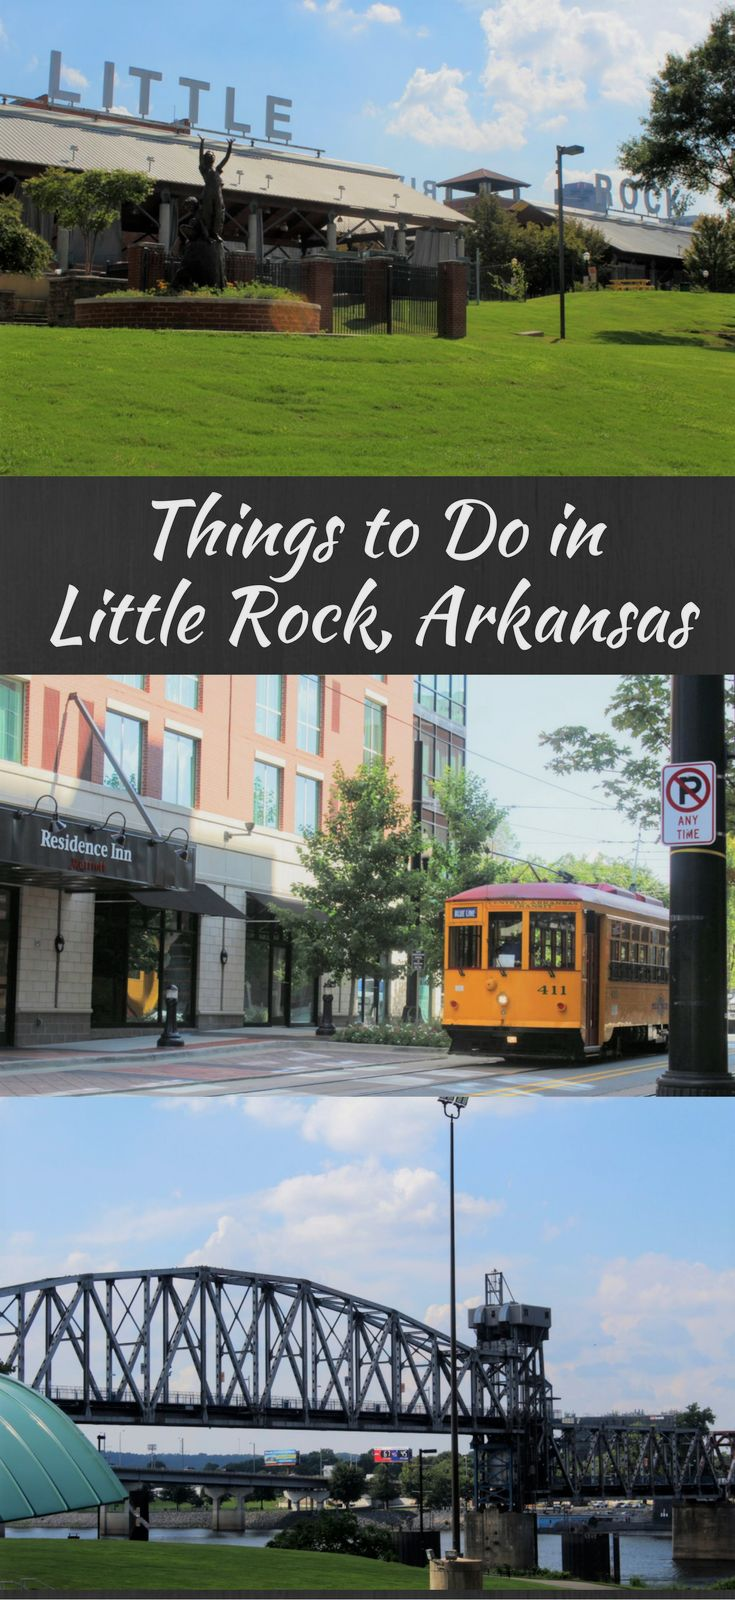 This guide to Little Rock, Arkansas tells you the must-sees, the must-eats, and the must-says in the city along with a suggestion for a day-trip or two. Looking for Little Rock, Arkansas inspiration? Look no further.